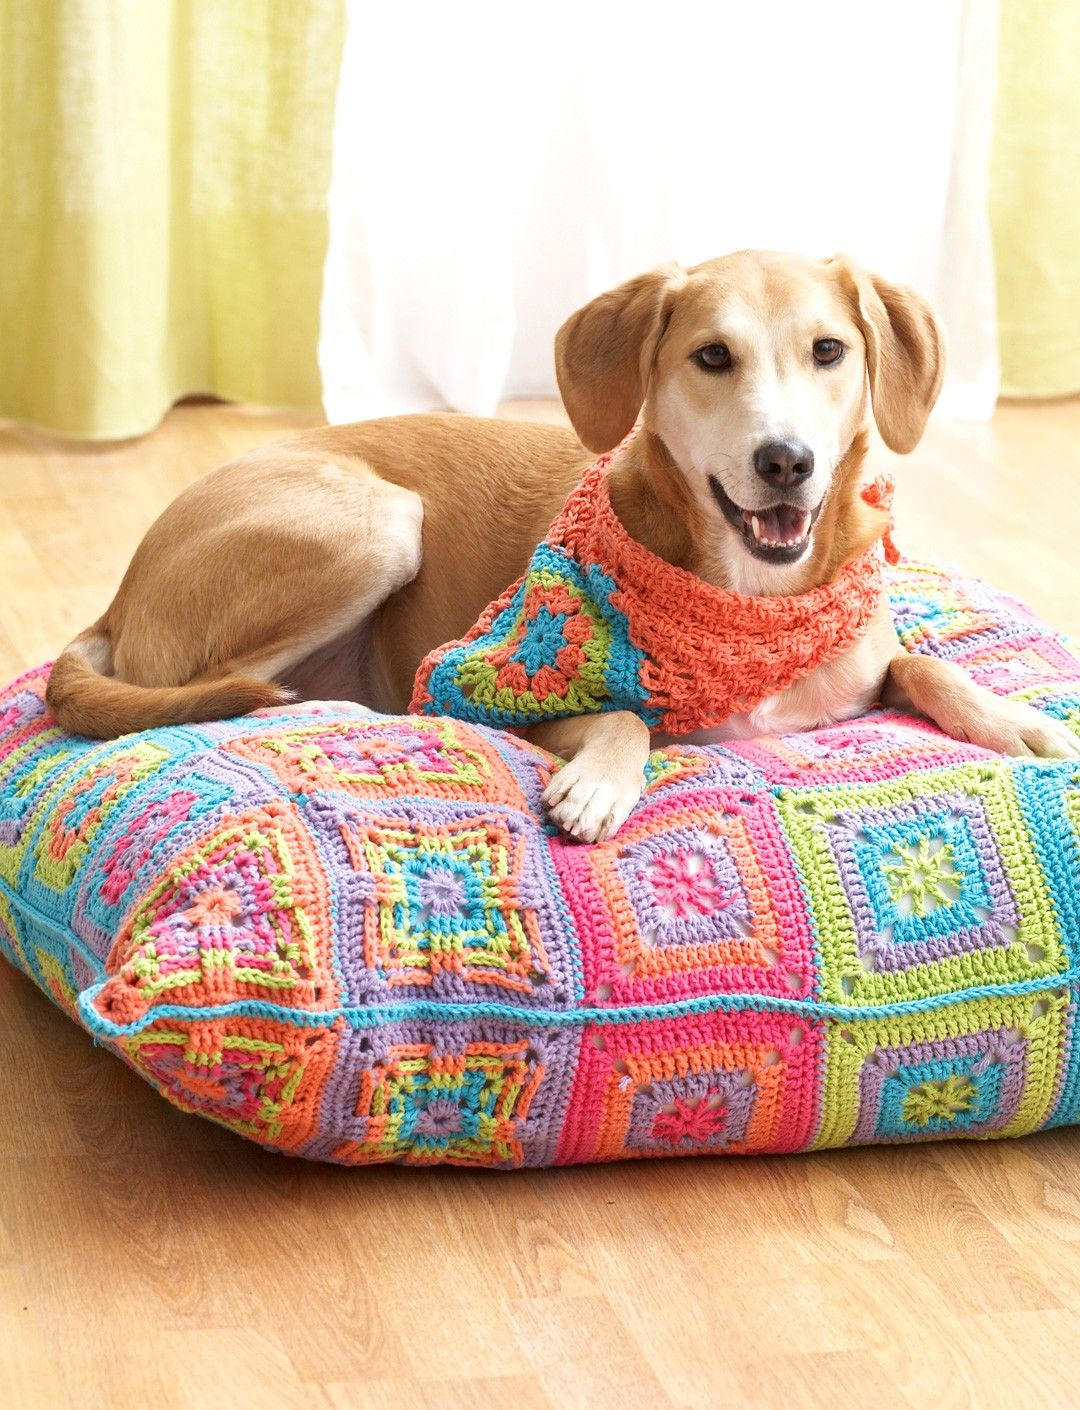 Yarnspirations lily dog bed and kerchief patterns yarnspirations lily dog bed and kerchief patterns yarnspirations bankloansurffo Image collections